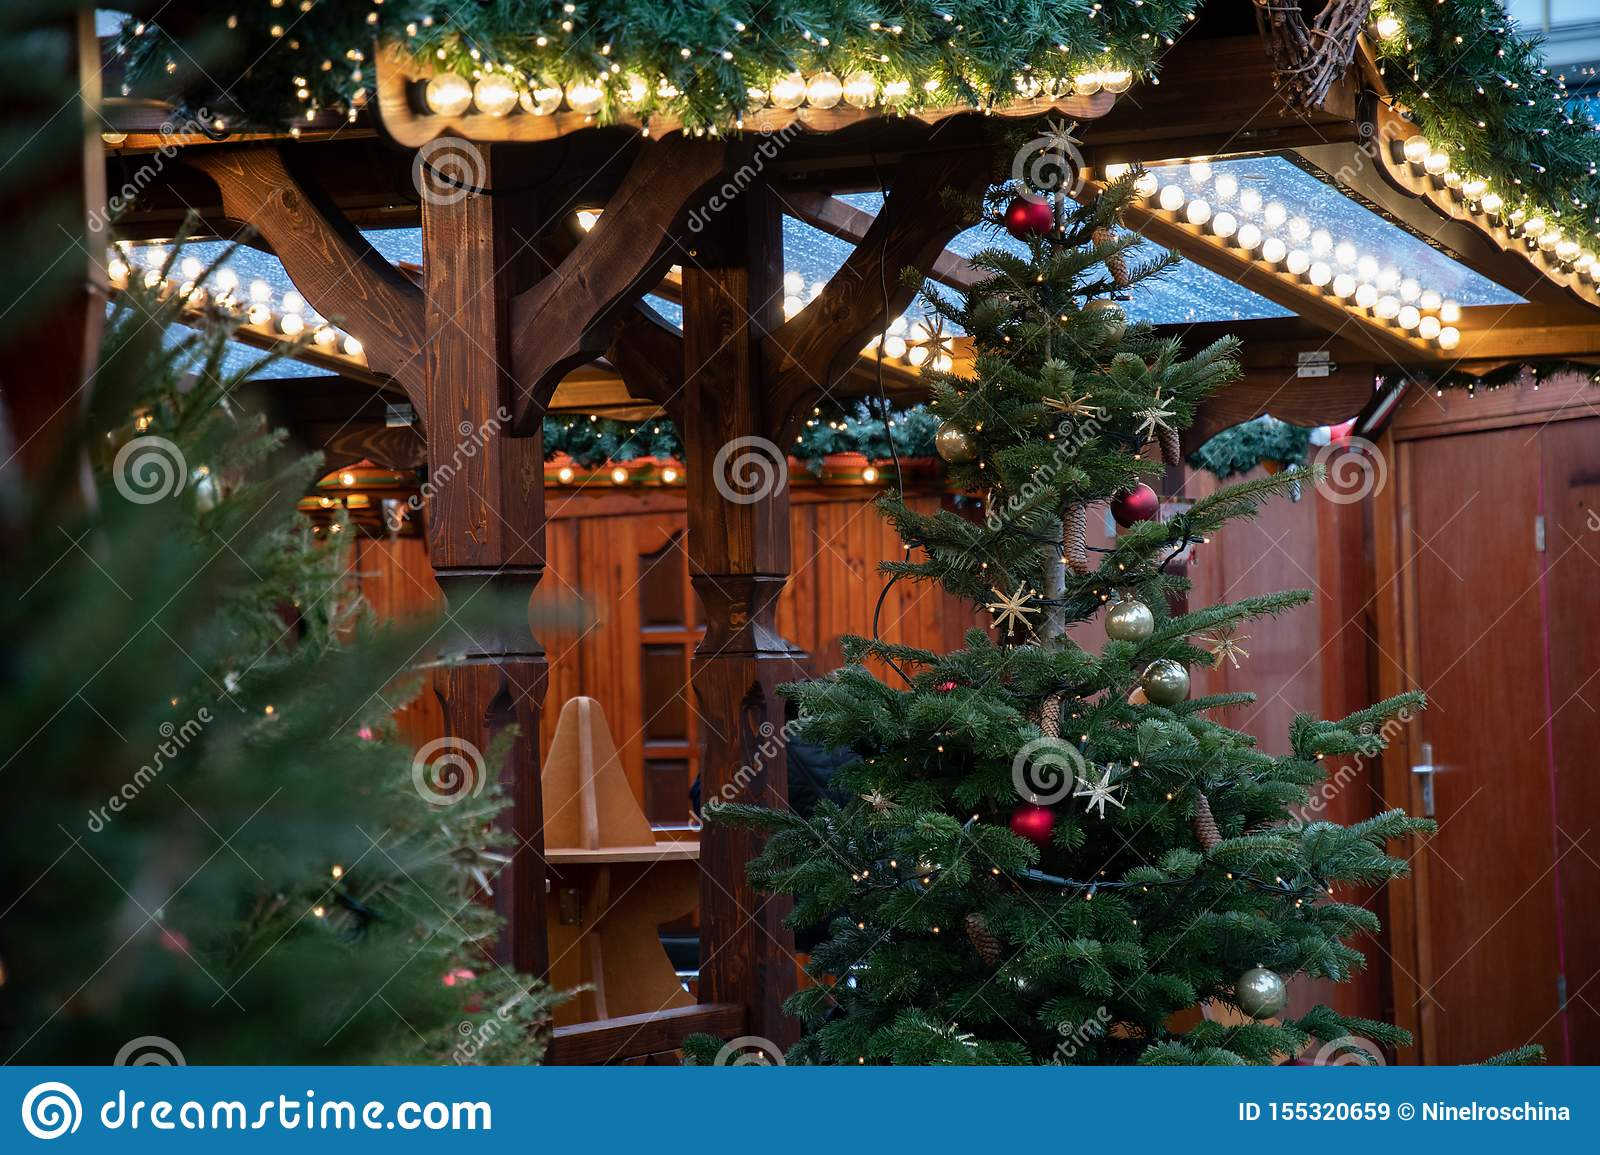 Traditional Christmas Lights.Rows Of Shiny Christmas Lights At Wooden Pavilion Of